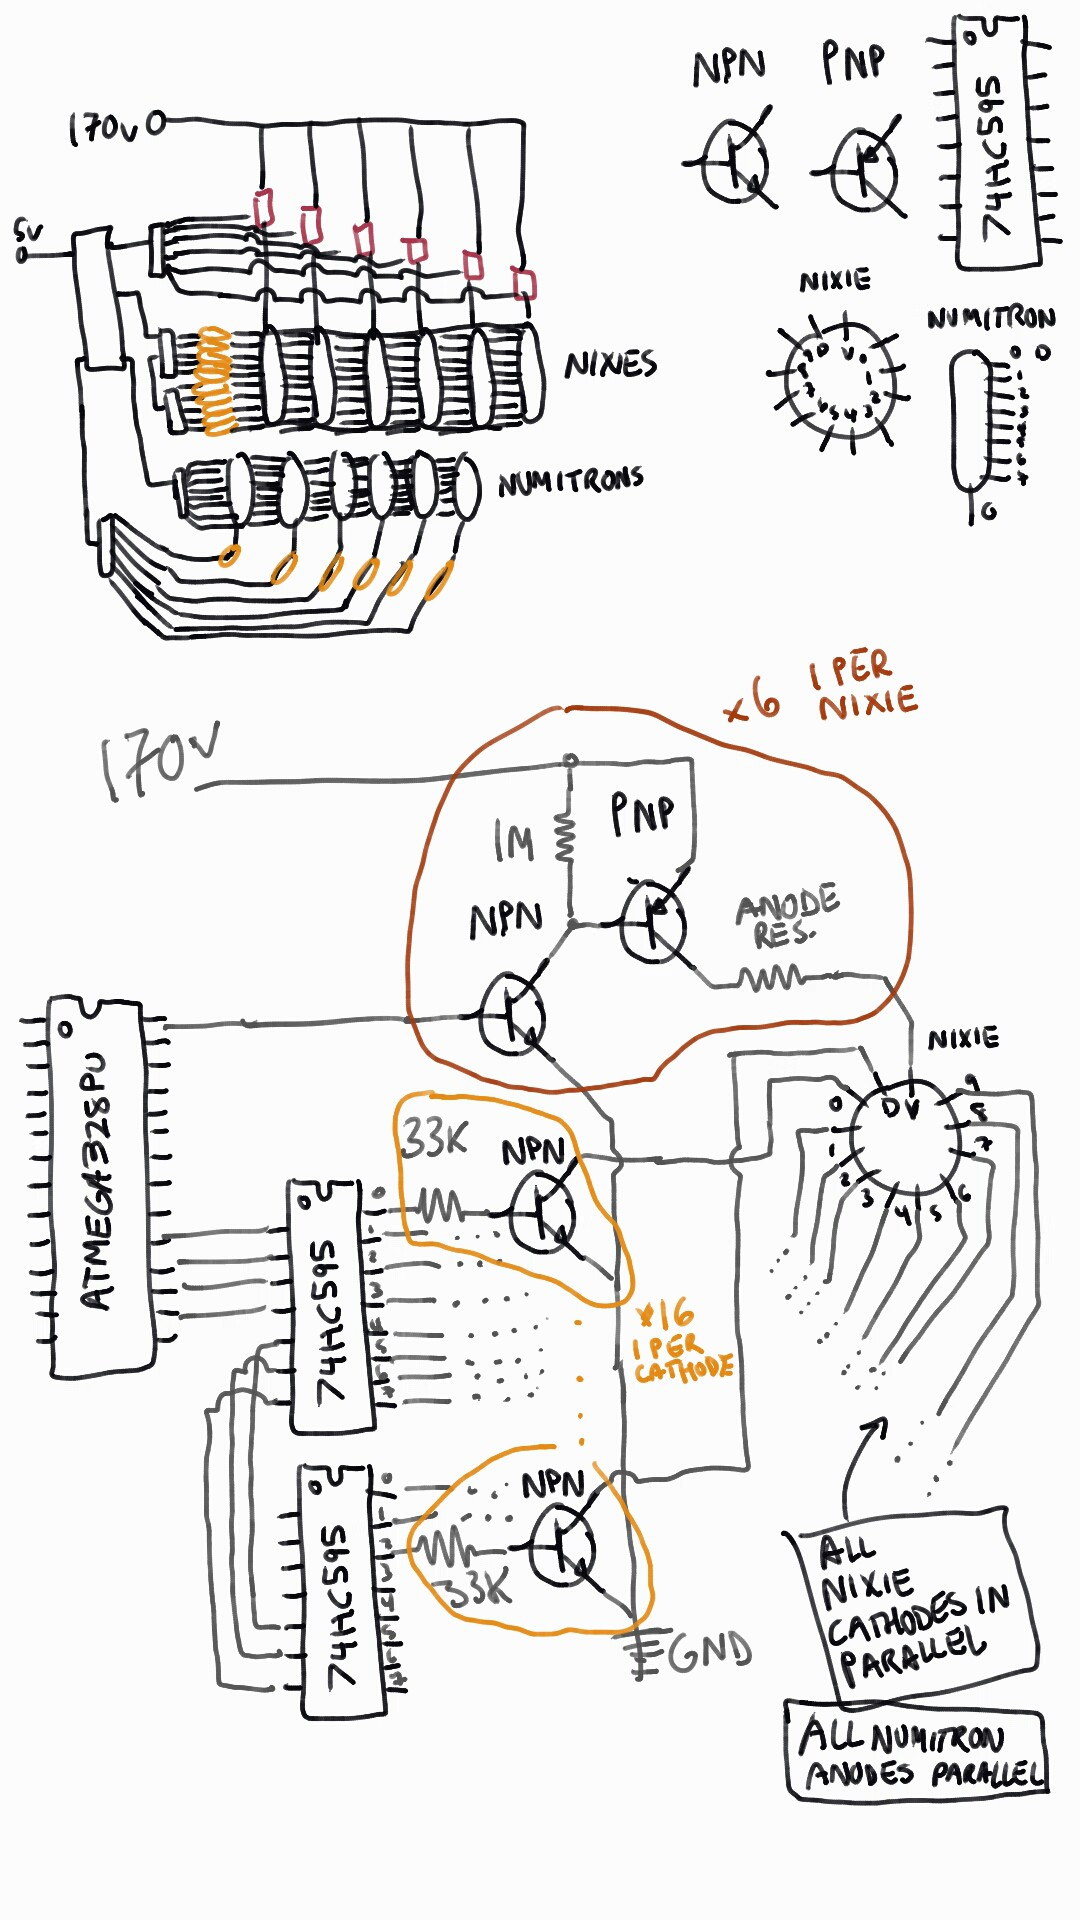 Project Nixie And Numitron Clock Circuit Diagrams Tube I Also Considered Running Each On Its Own Shift Register Daisy Chaining Them Together But Want To Wait See How The